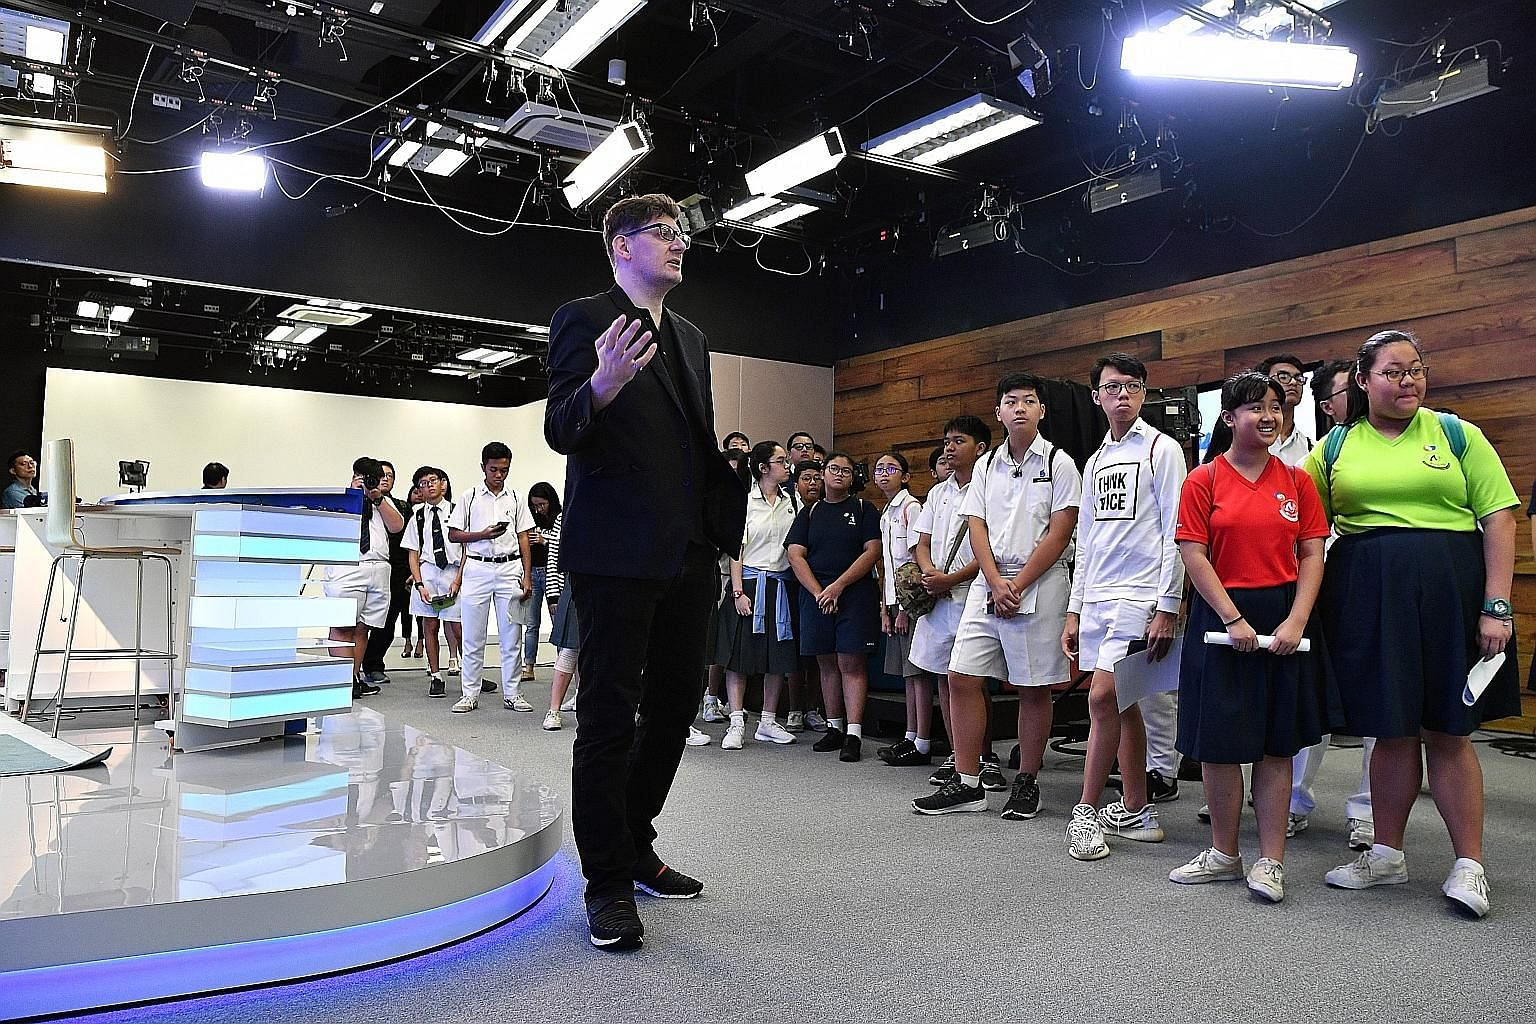 Mr Jonathan Matthew Roberts, creative director at EMTM Video, showing the students around a studio yesterday. The 40 secondary school students were drawn from among more than 300 participants of N.E.mation!, an inter-school digital animation competit